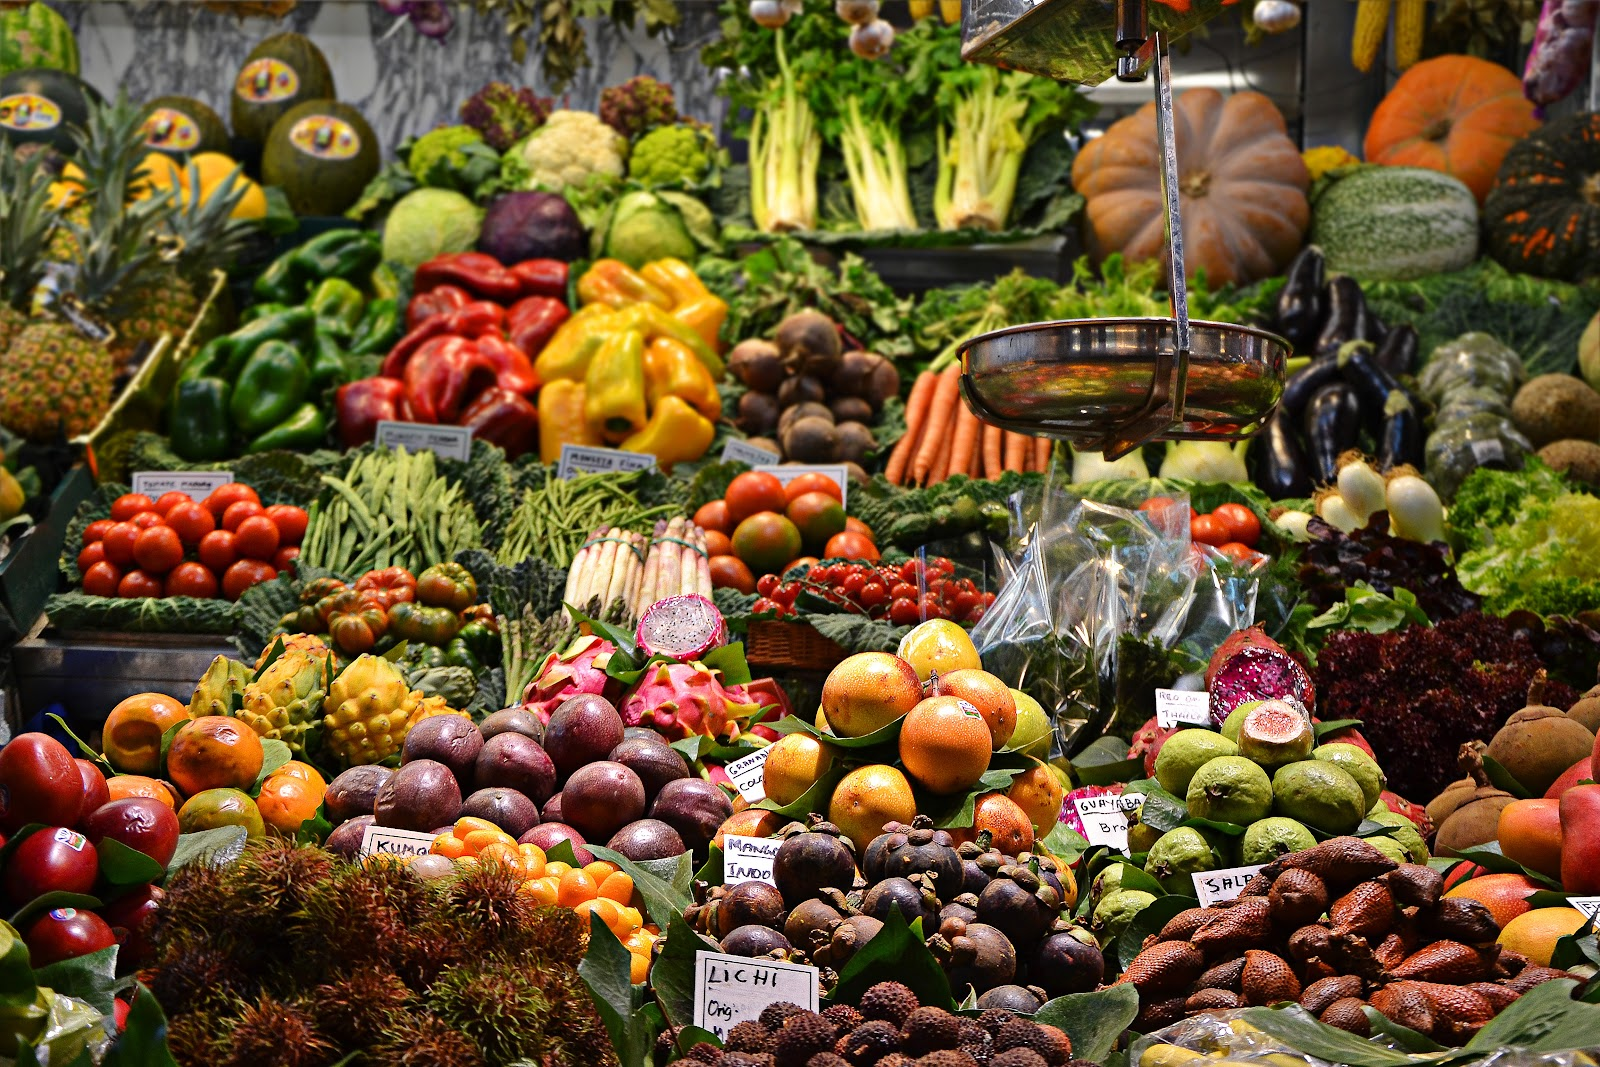 photo of a market stand with multiple types of fruits and vegetables